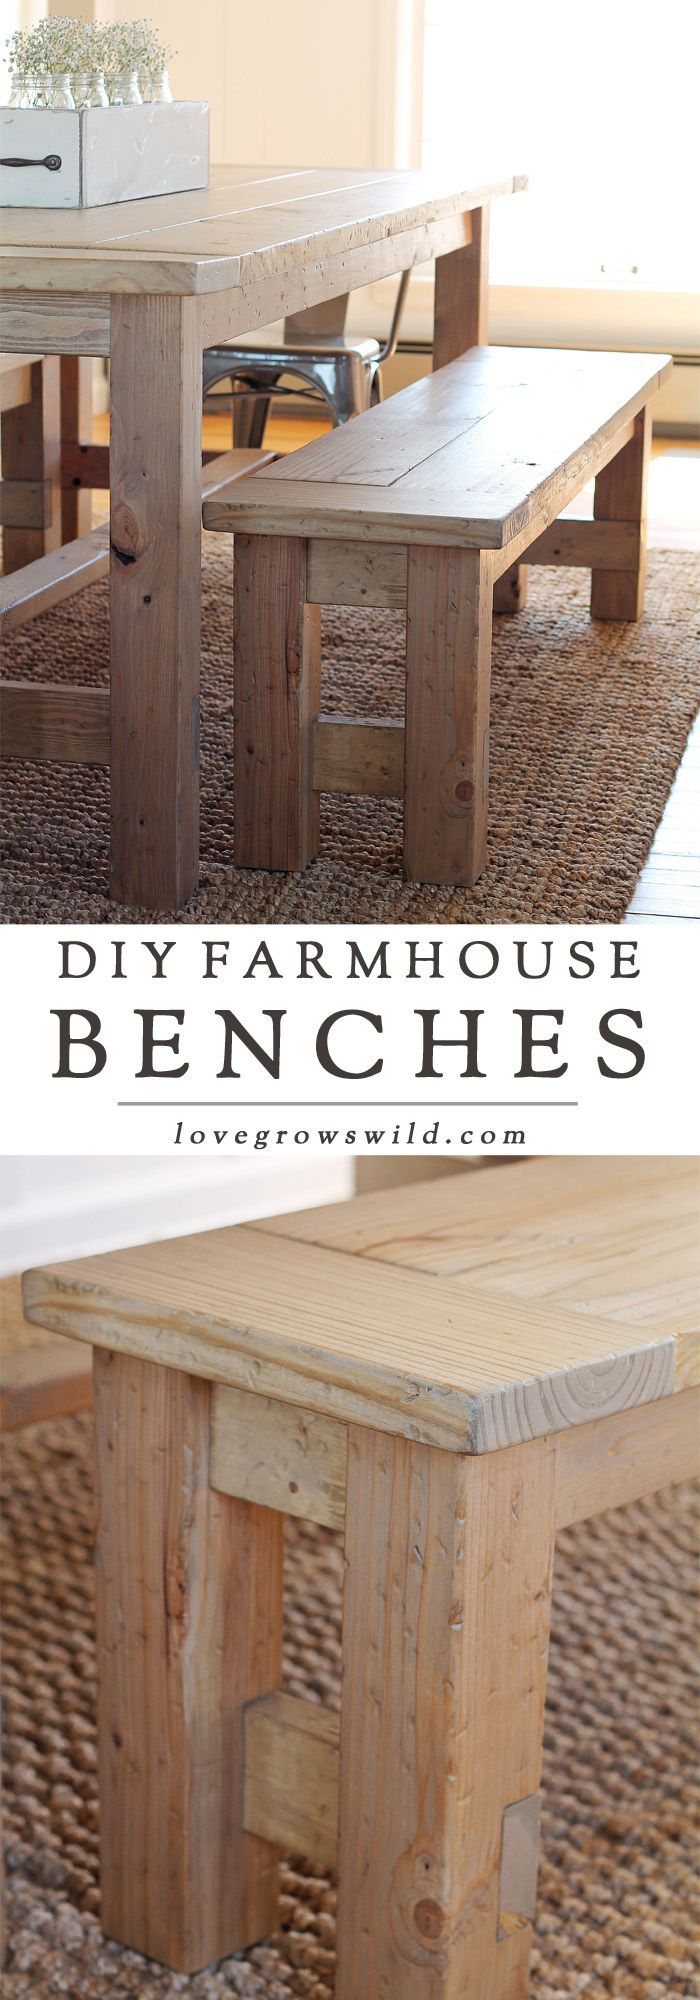 Marvelous DIY Farmhouse Bench